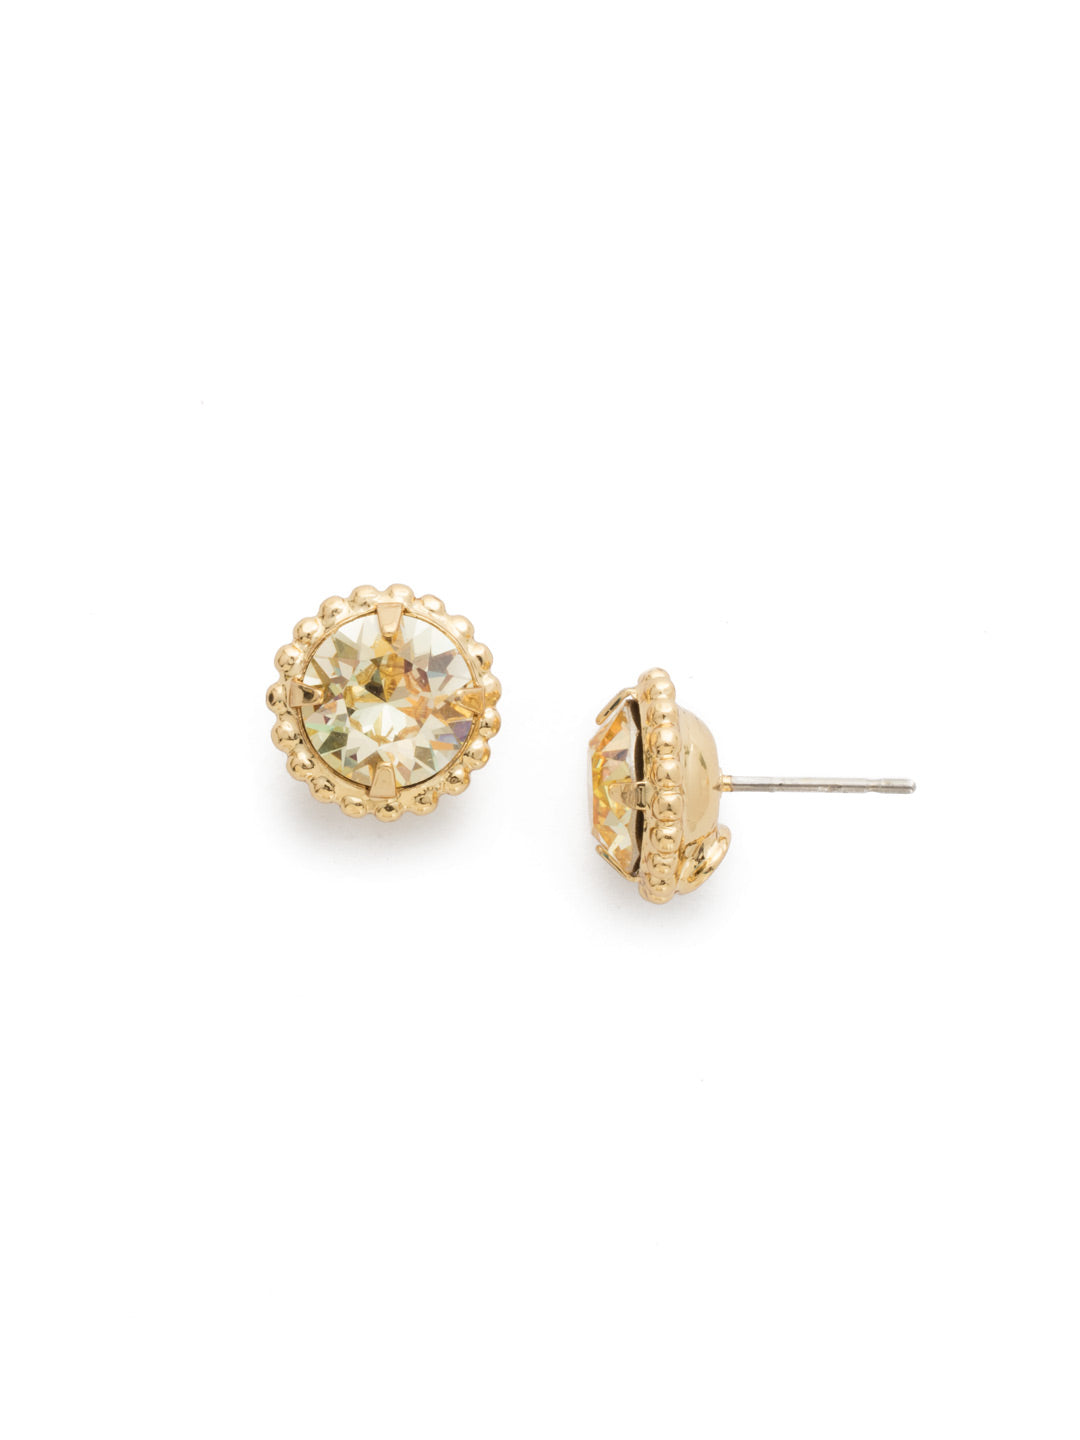 Simplicity Stud Earrings - EBY38BGCCH